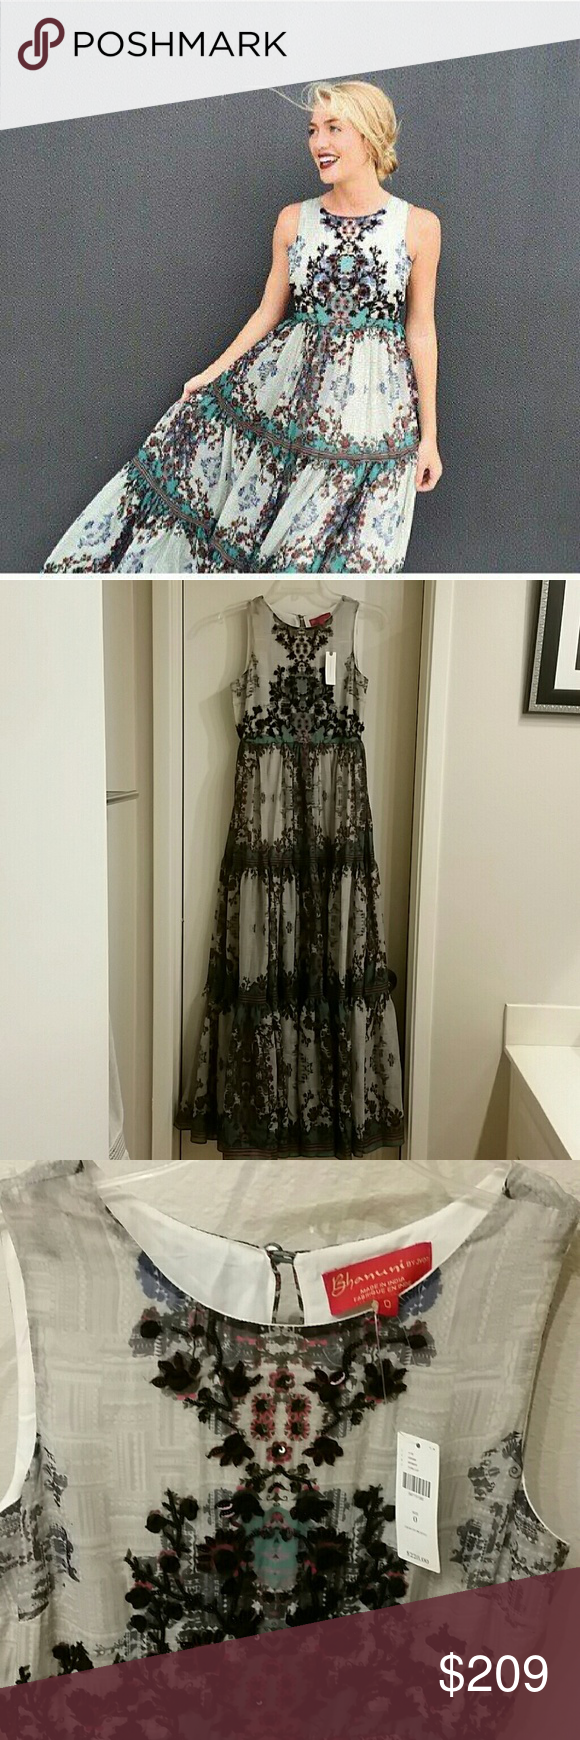 2ca5c8645313 Anthropologie Madera maxi dress Bhanuni 0 New with tag attached, size 0.  Gorgeous Madera